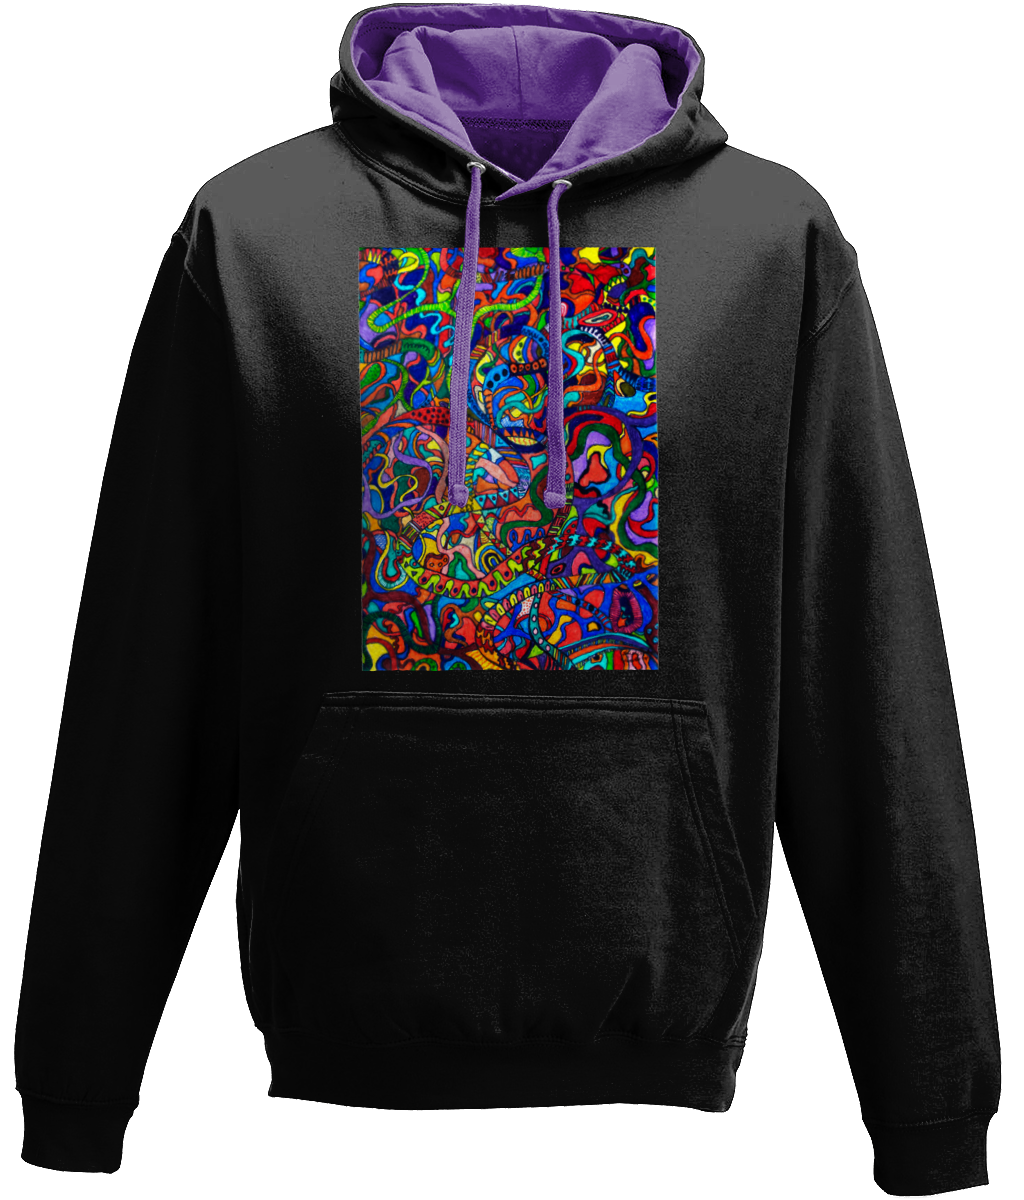 #ArtIt- urban artwear making streetwear out of contemporary art: Jane Indigo black hoodie delivered print on demand